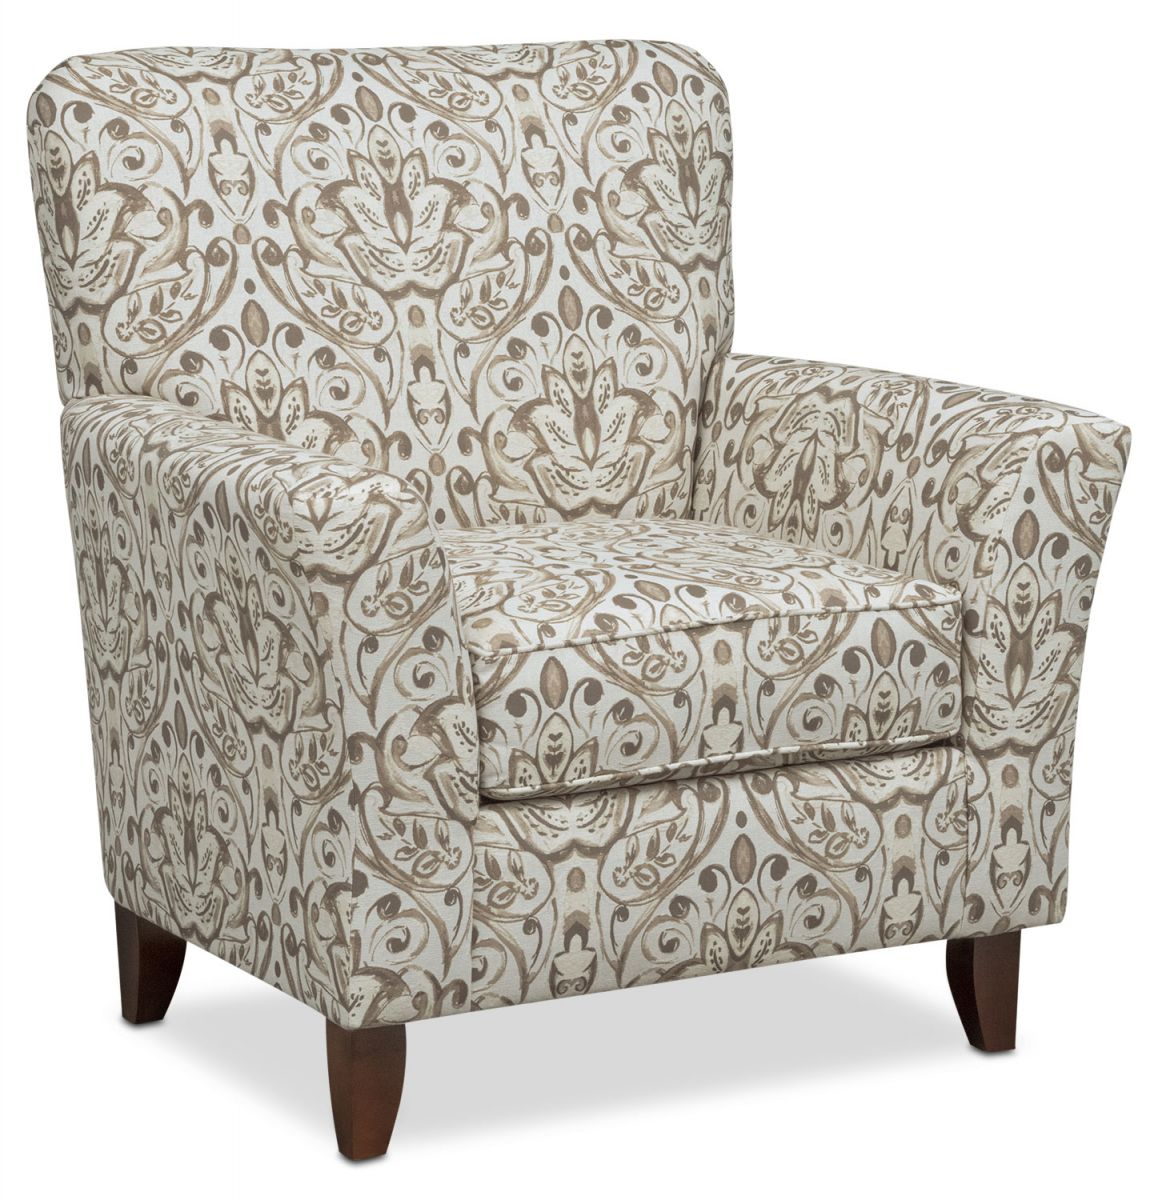 Mckenna Accent Chair intended for Living Room Furniture Accent Chairs